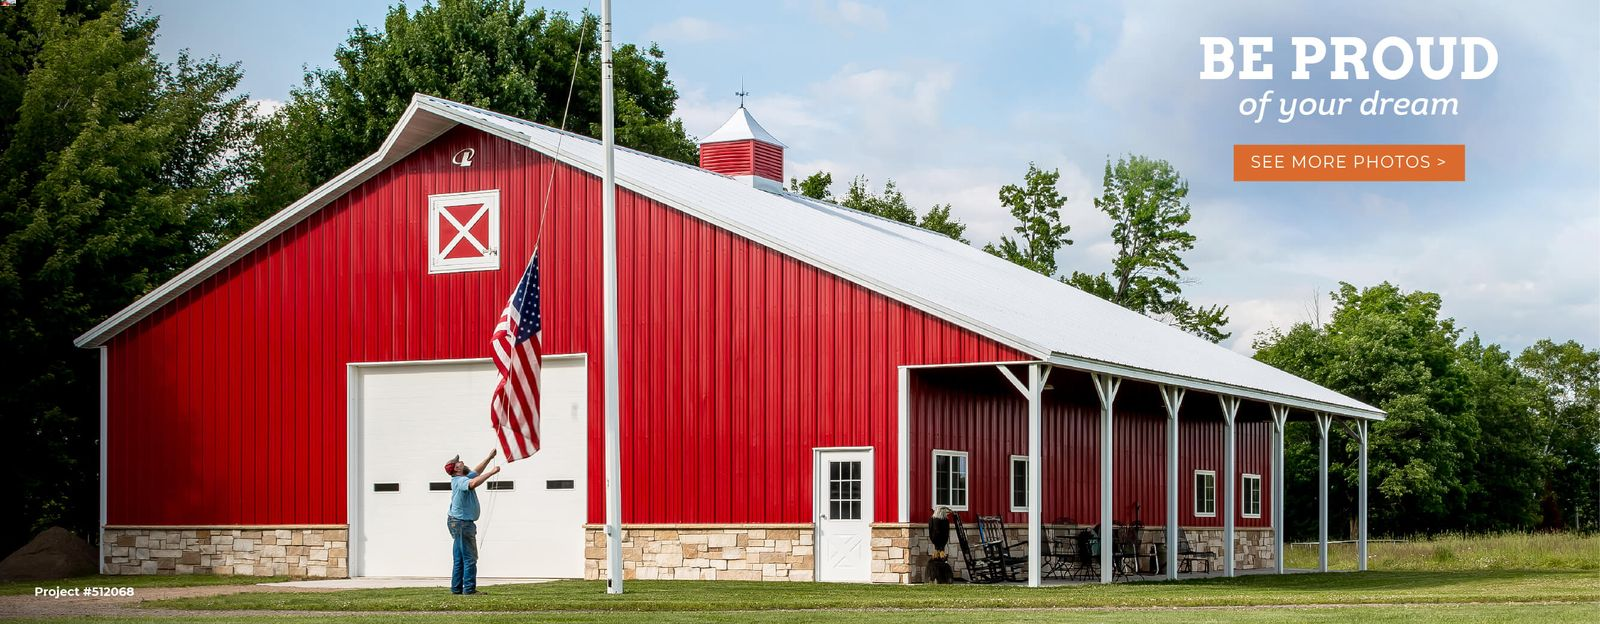 Pole Buildings | Pole Barn Builder | Lester Buildings